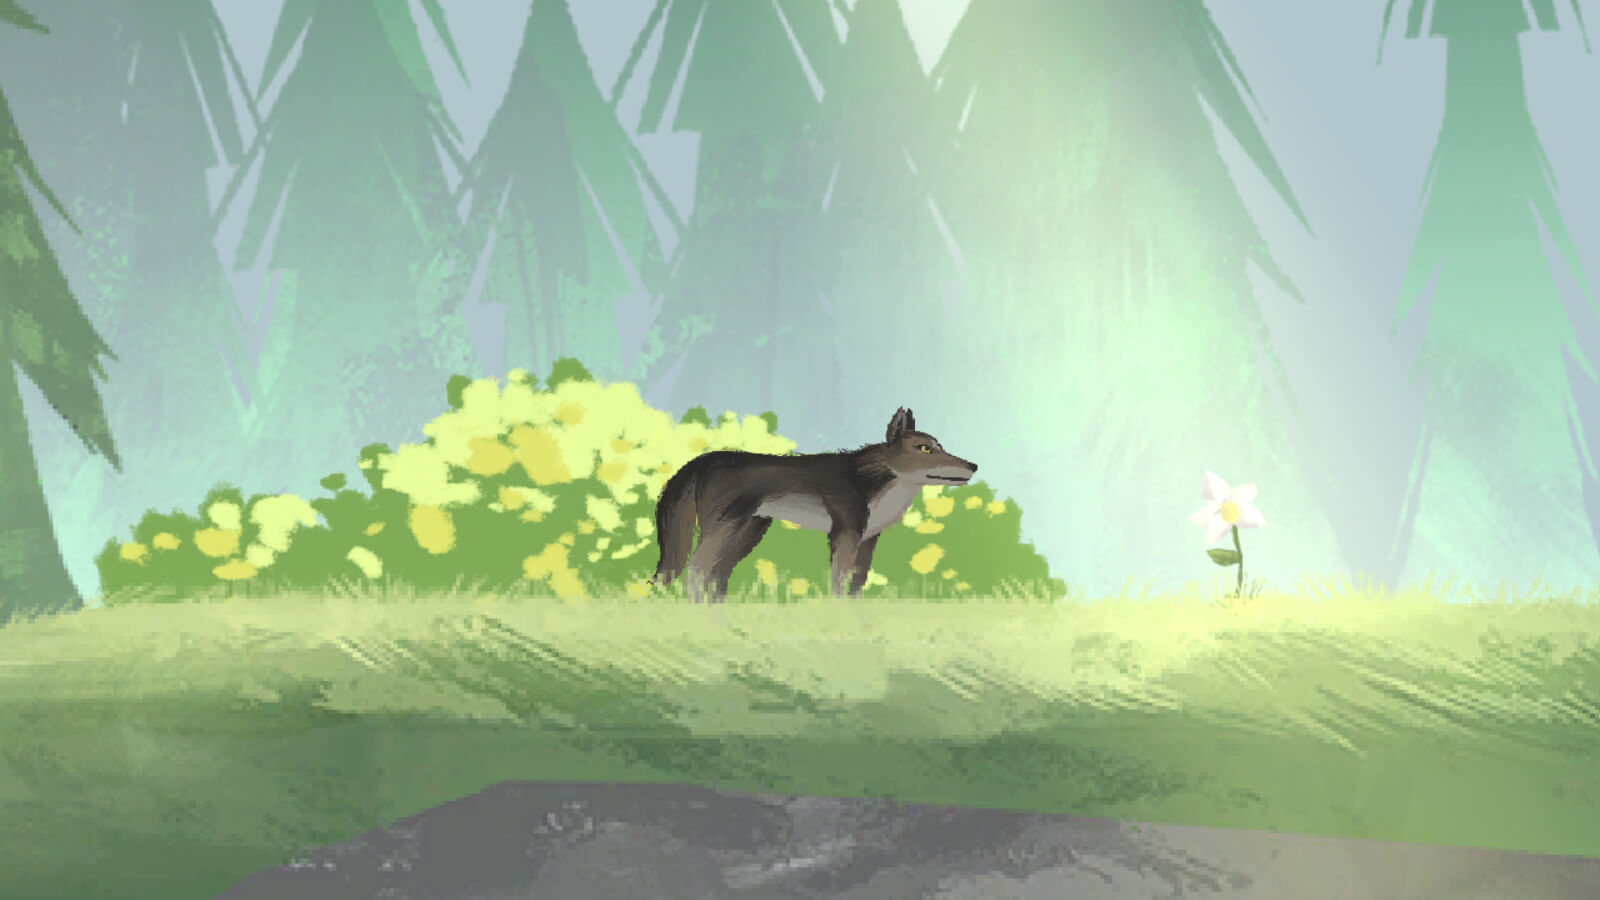 A wolf standing in a green grassy meadow with sunlight shining down